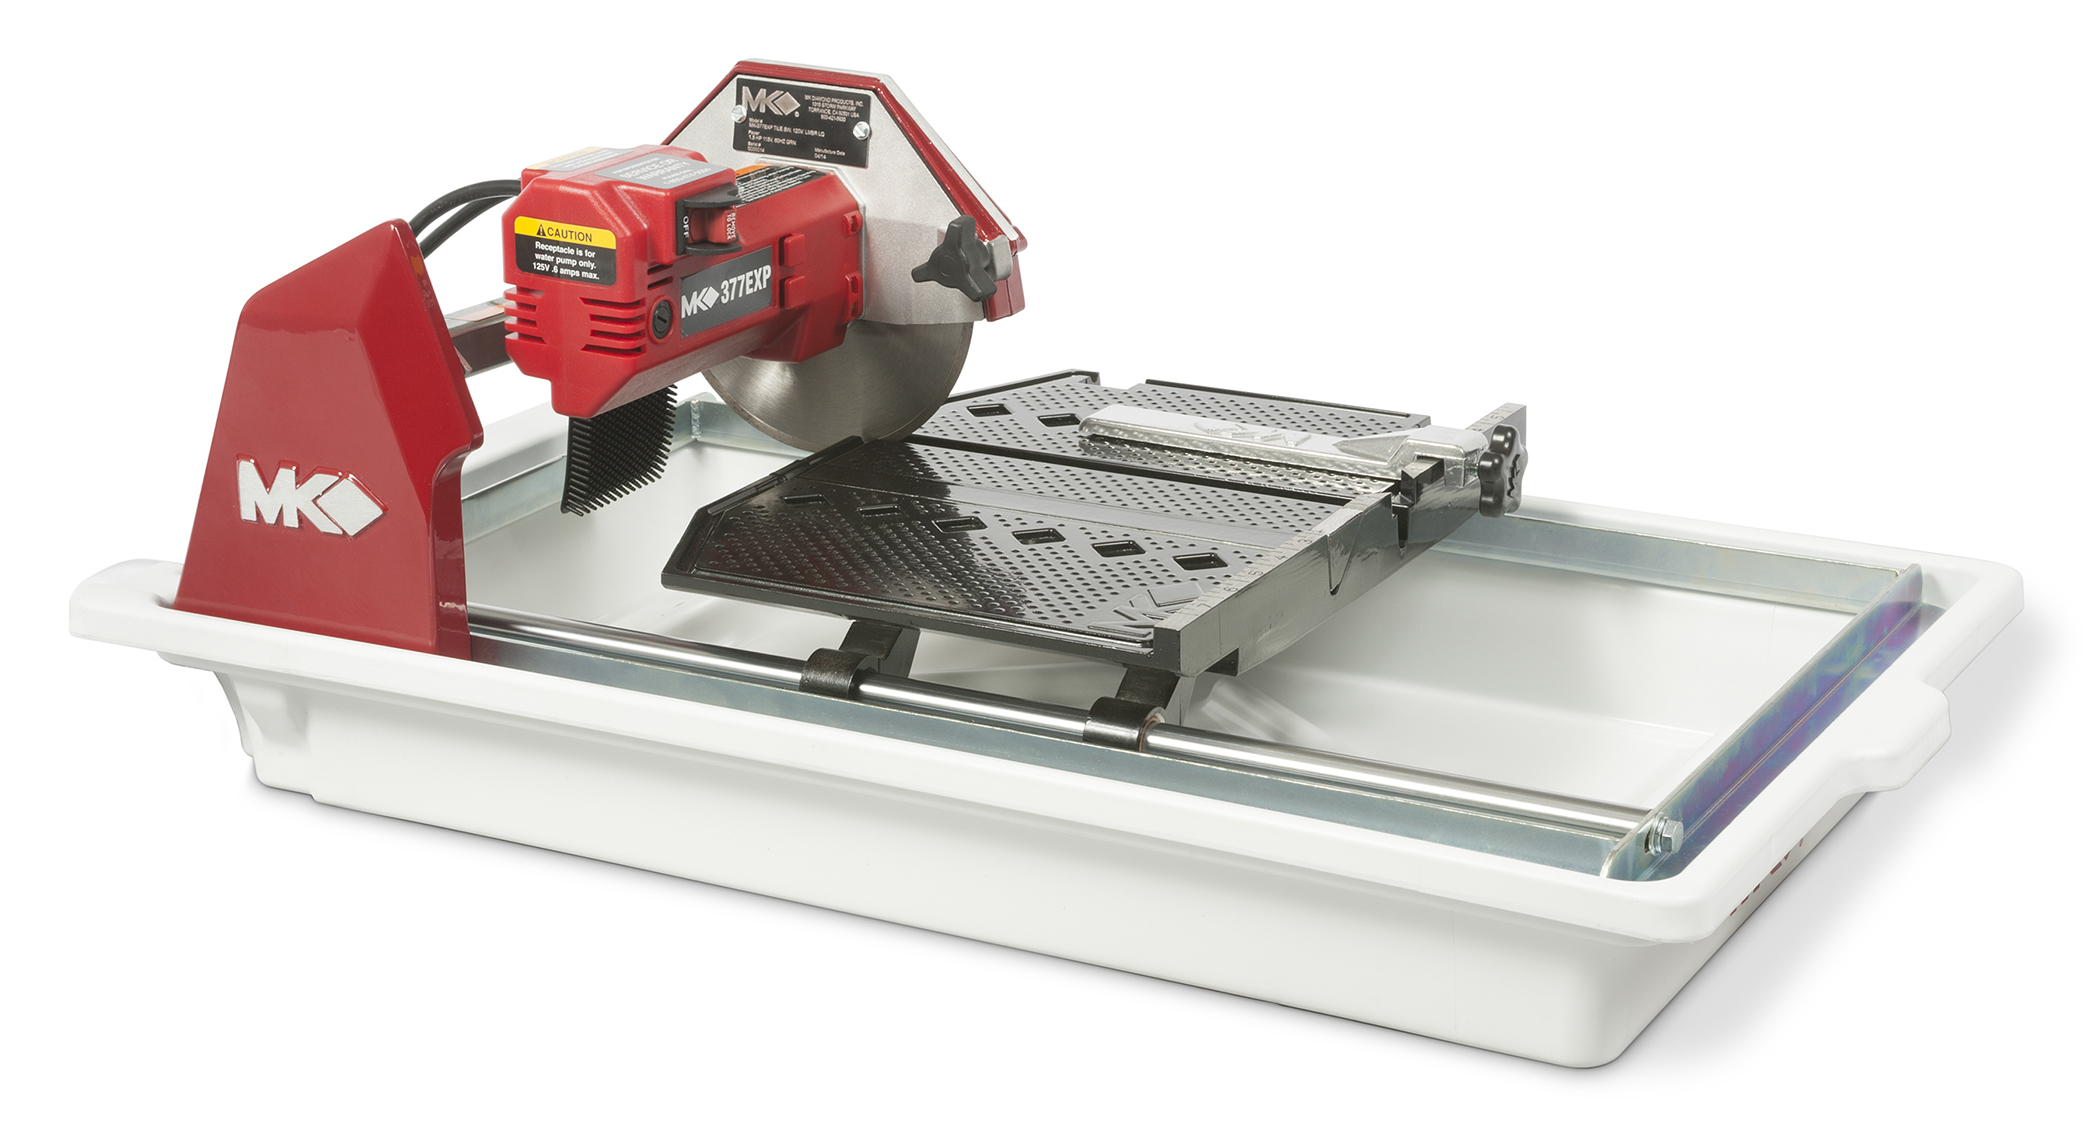 mk diamond mk safeswitch 7 in corded wet tile saw 5 amps 120 volt 1 2 hp 5500 rpm